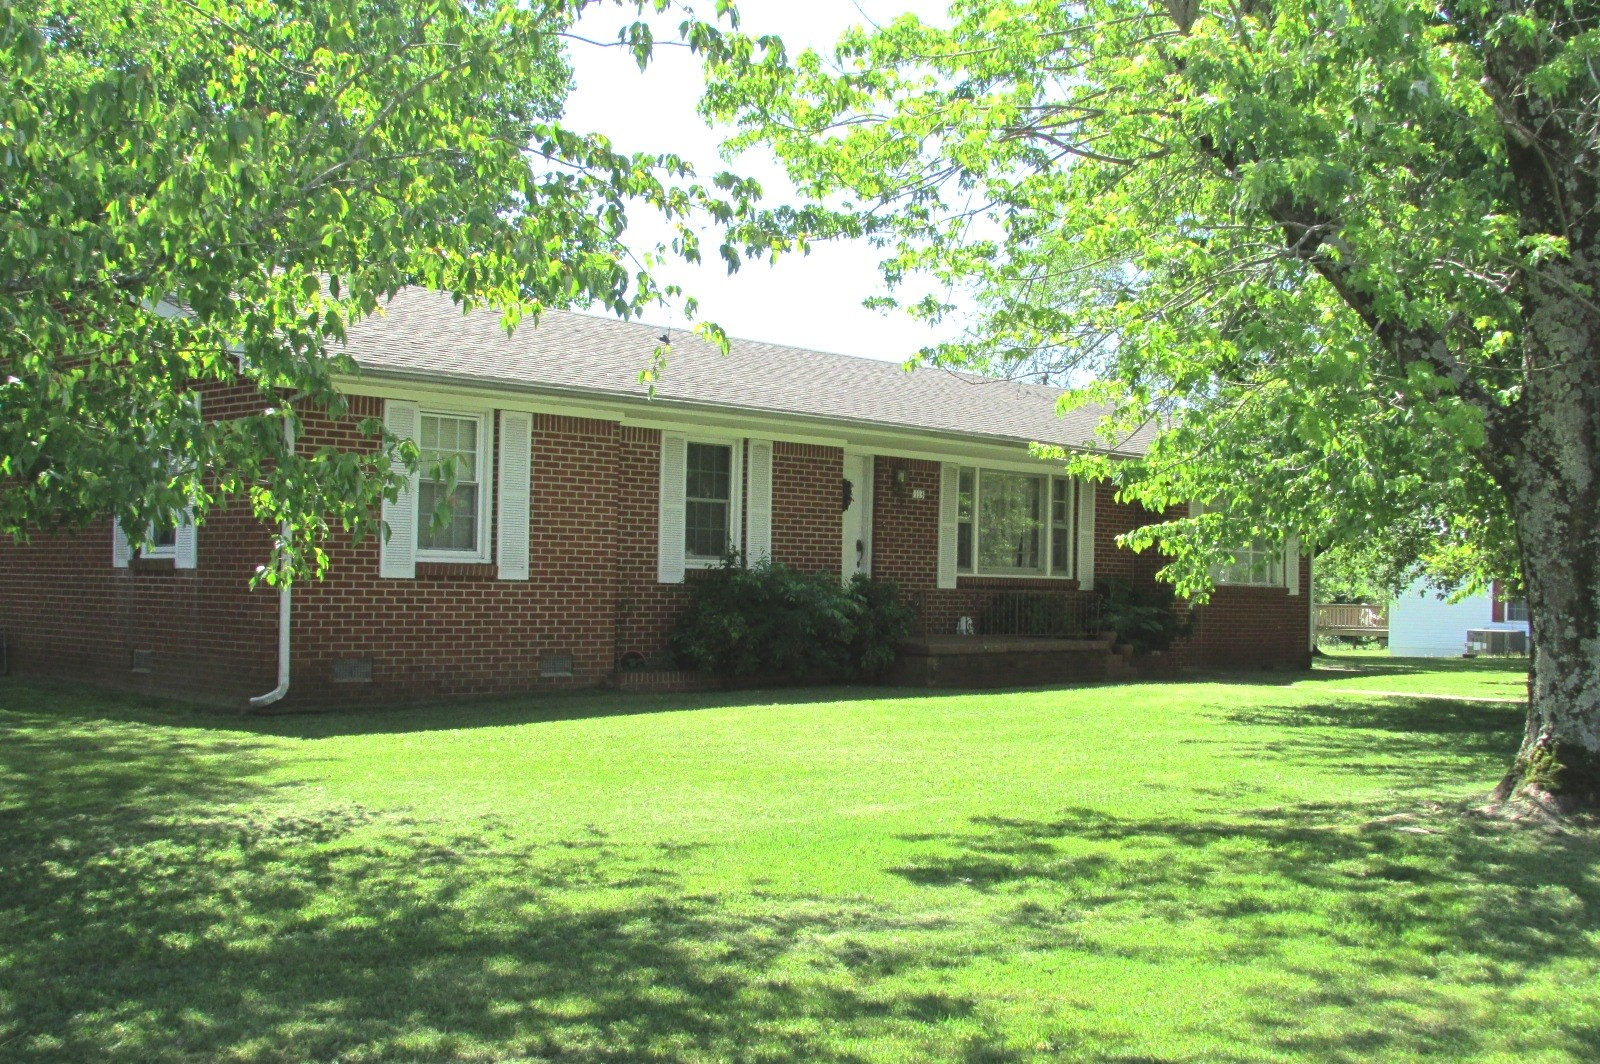 113 Cedar Street Hohenwald Lewis County Tennessee Auction